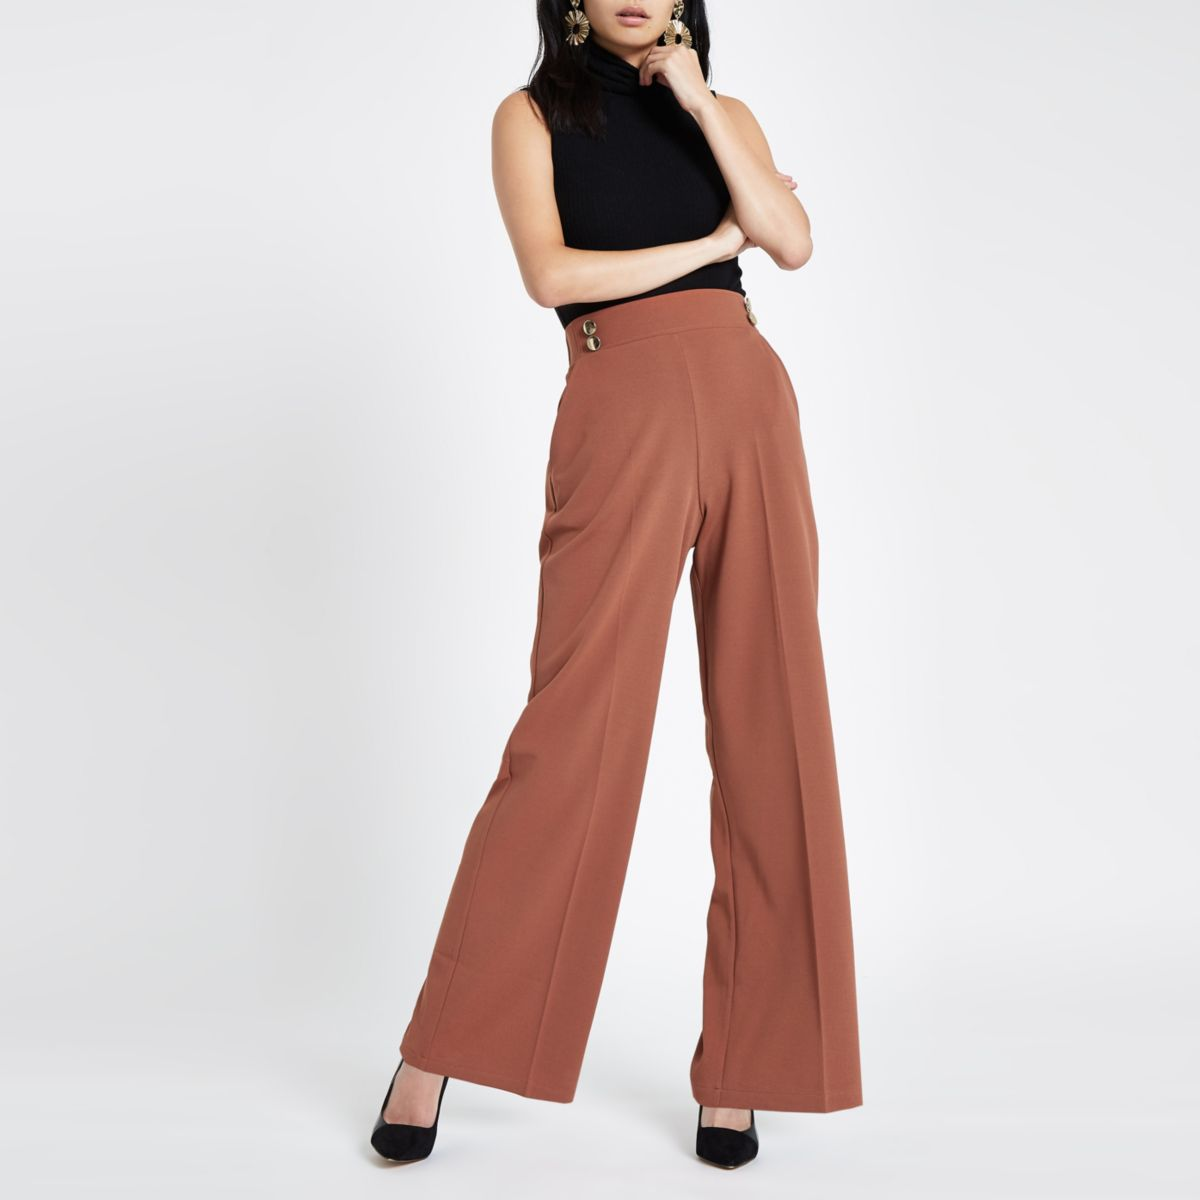 Brown double button wide leg pull on pants